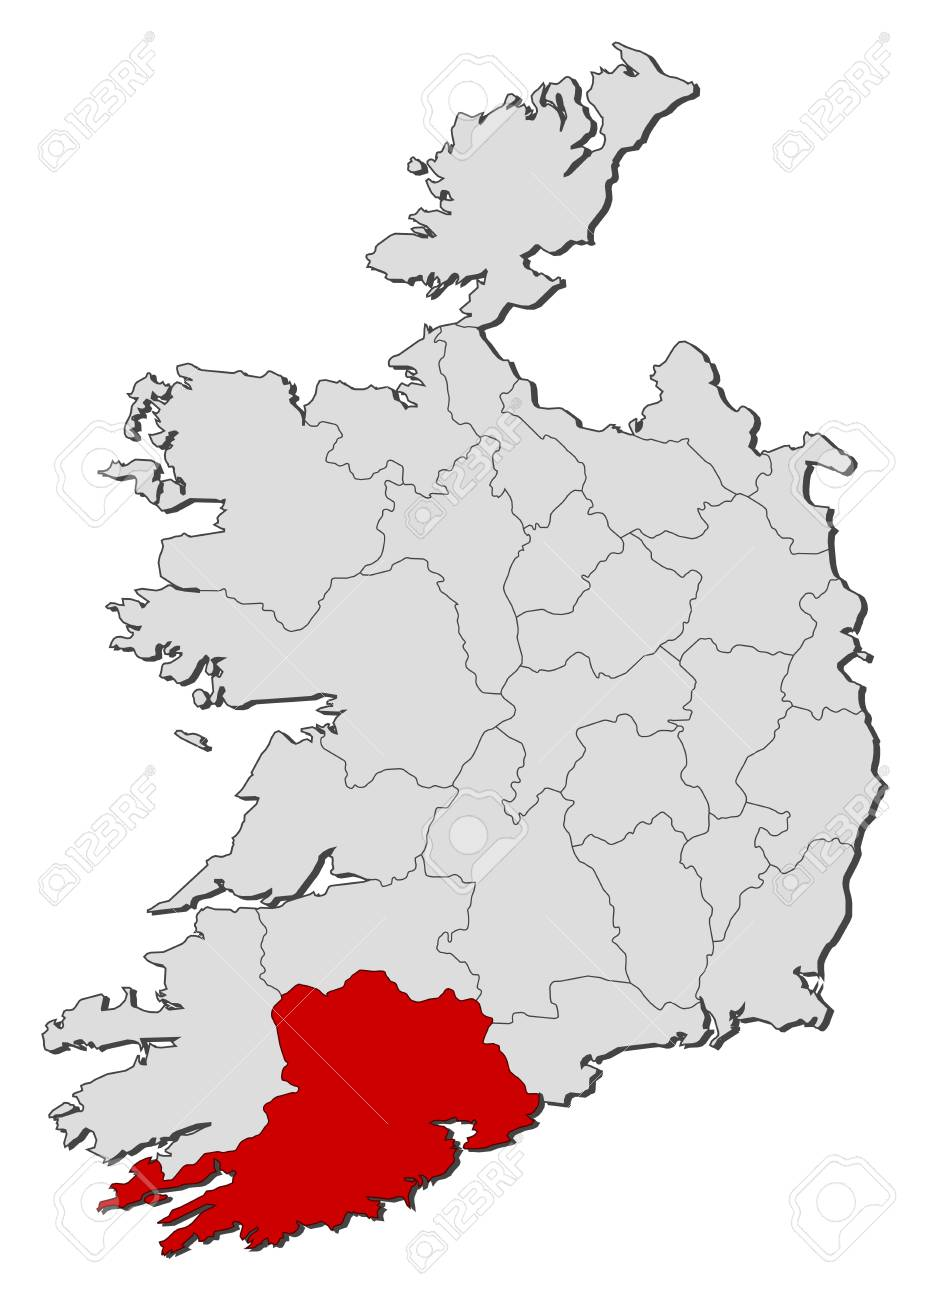 Map of ireland with the provinces cork is highlighted royalty free map of ireland with the provinces cork is highlighted stock vector 57902595 gumiabroncs Image collections